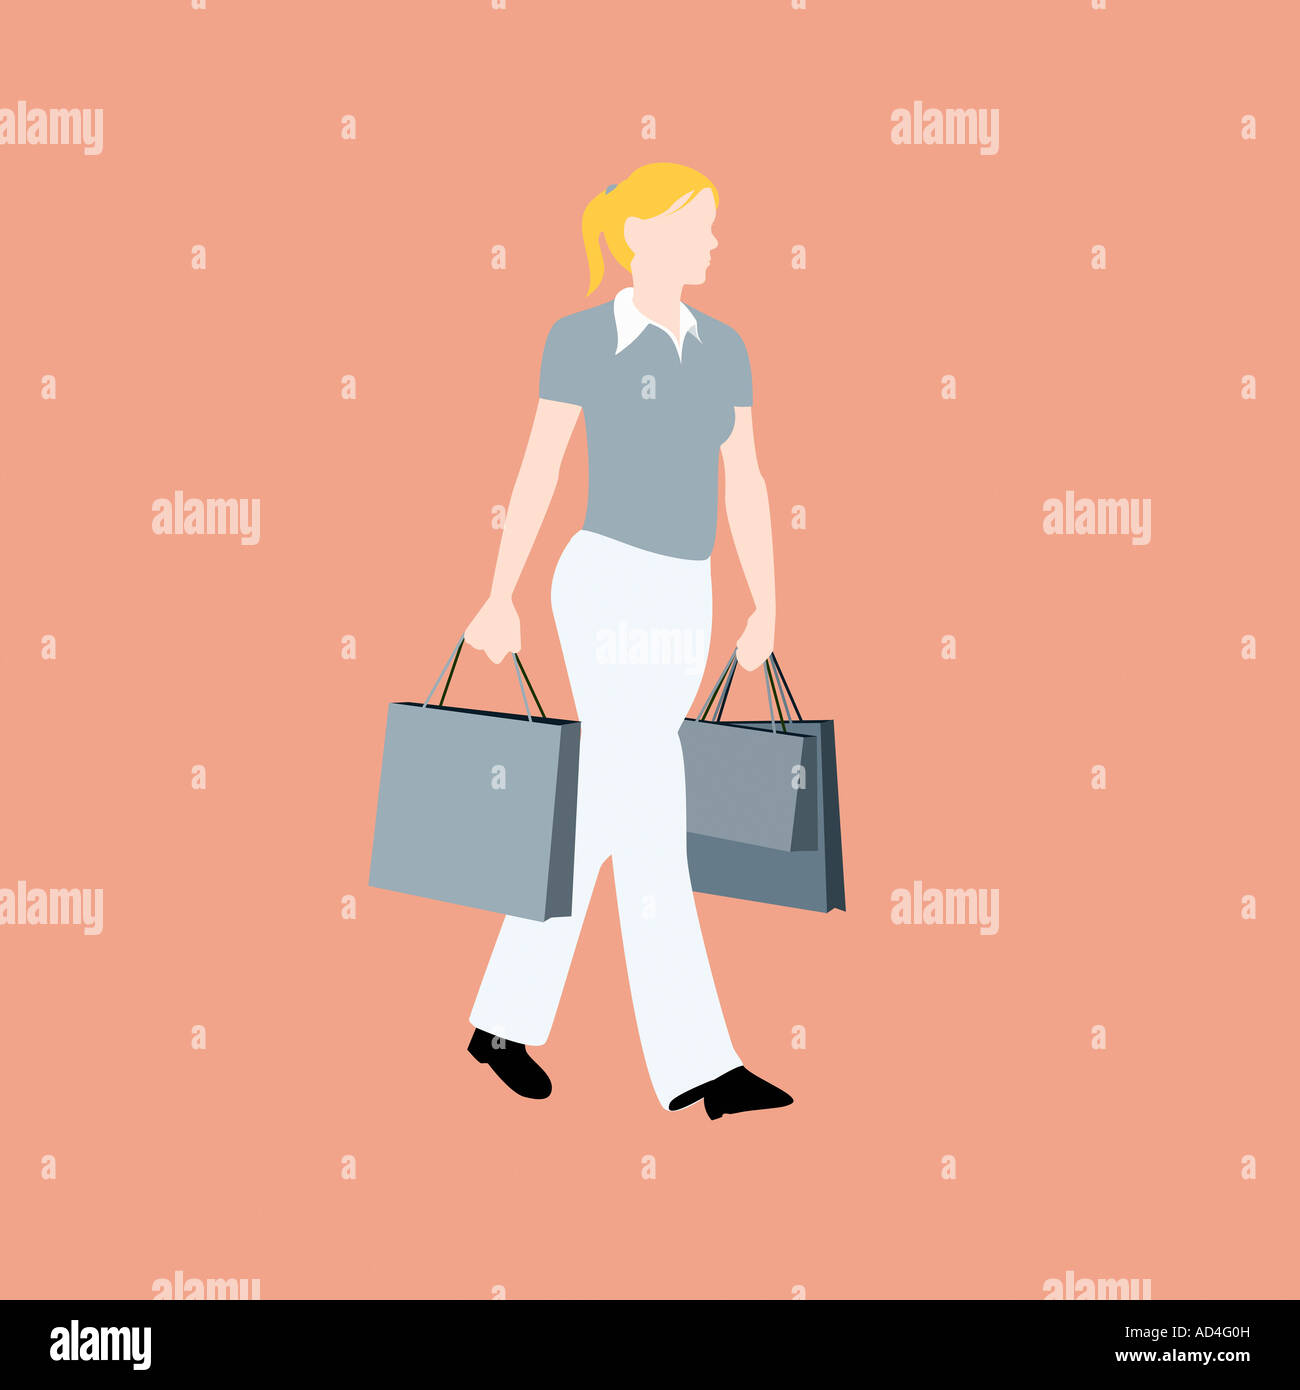 A woman walking with shopping bags - Stock Image